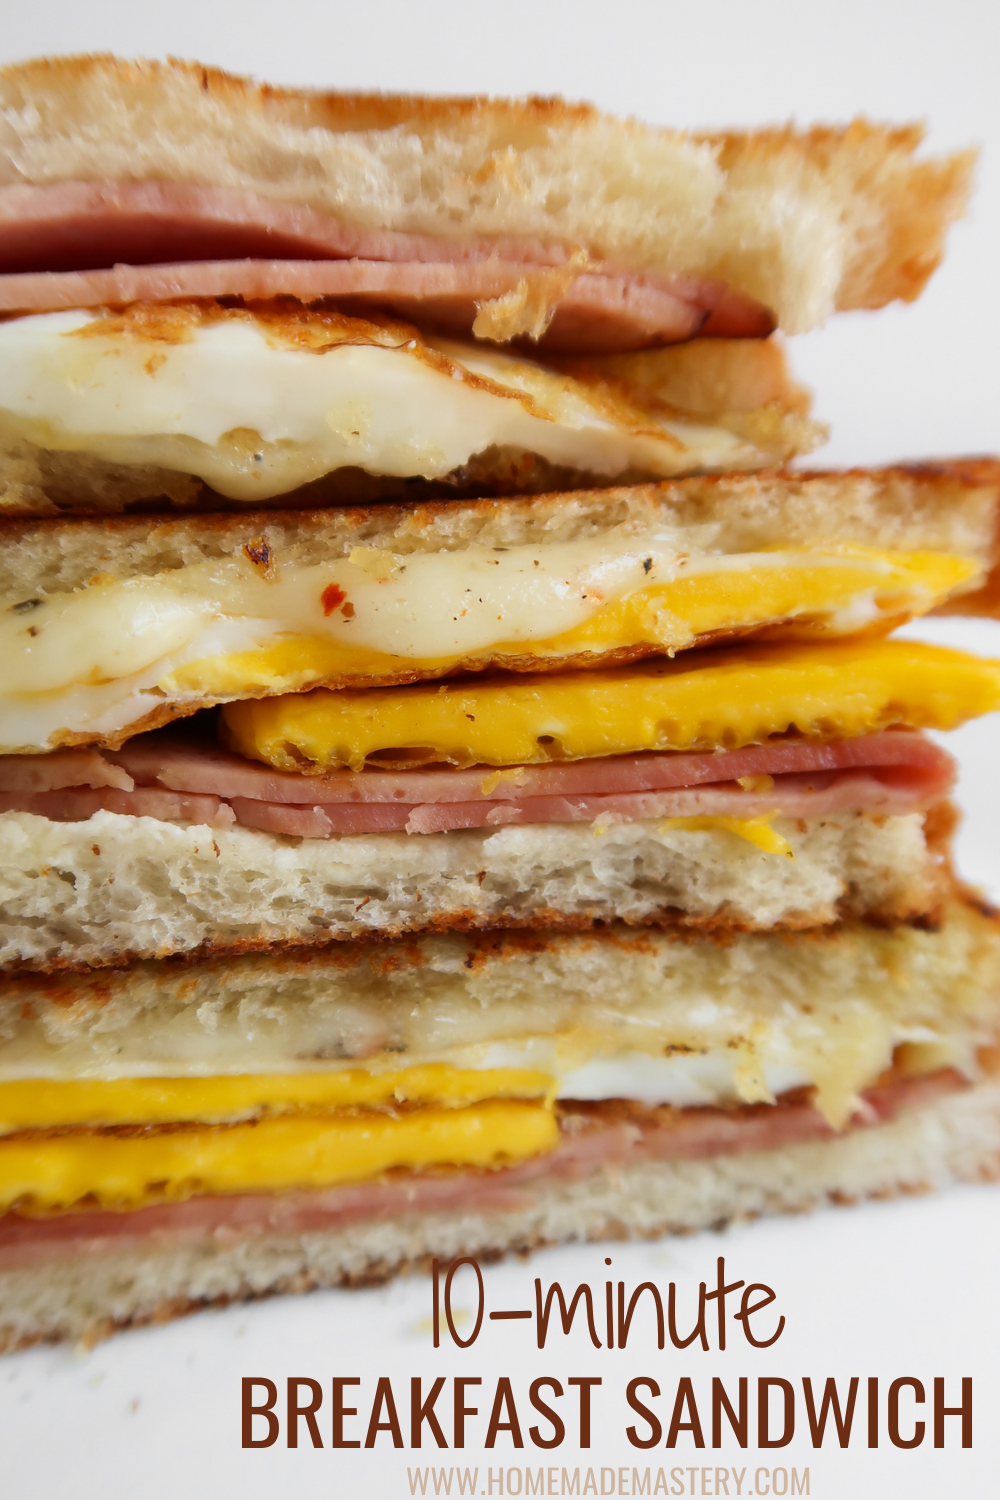 10-minute egg, ham and cheese breakfast sandwich recipe! This easy sandwich recipe is a super tasty, simple and quick breakfast idea!